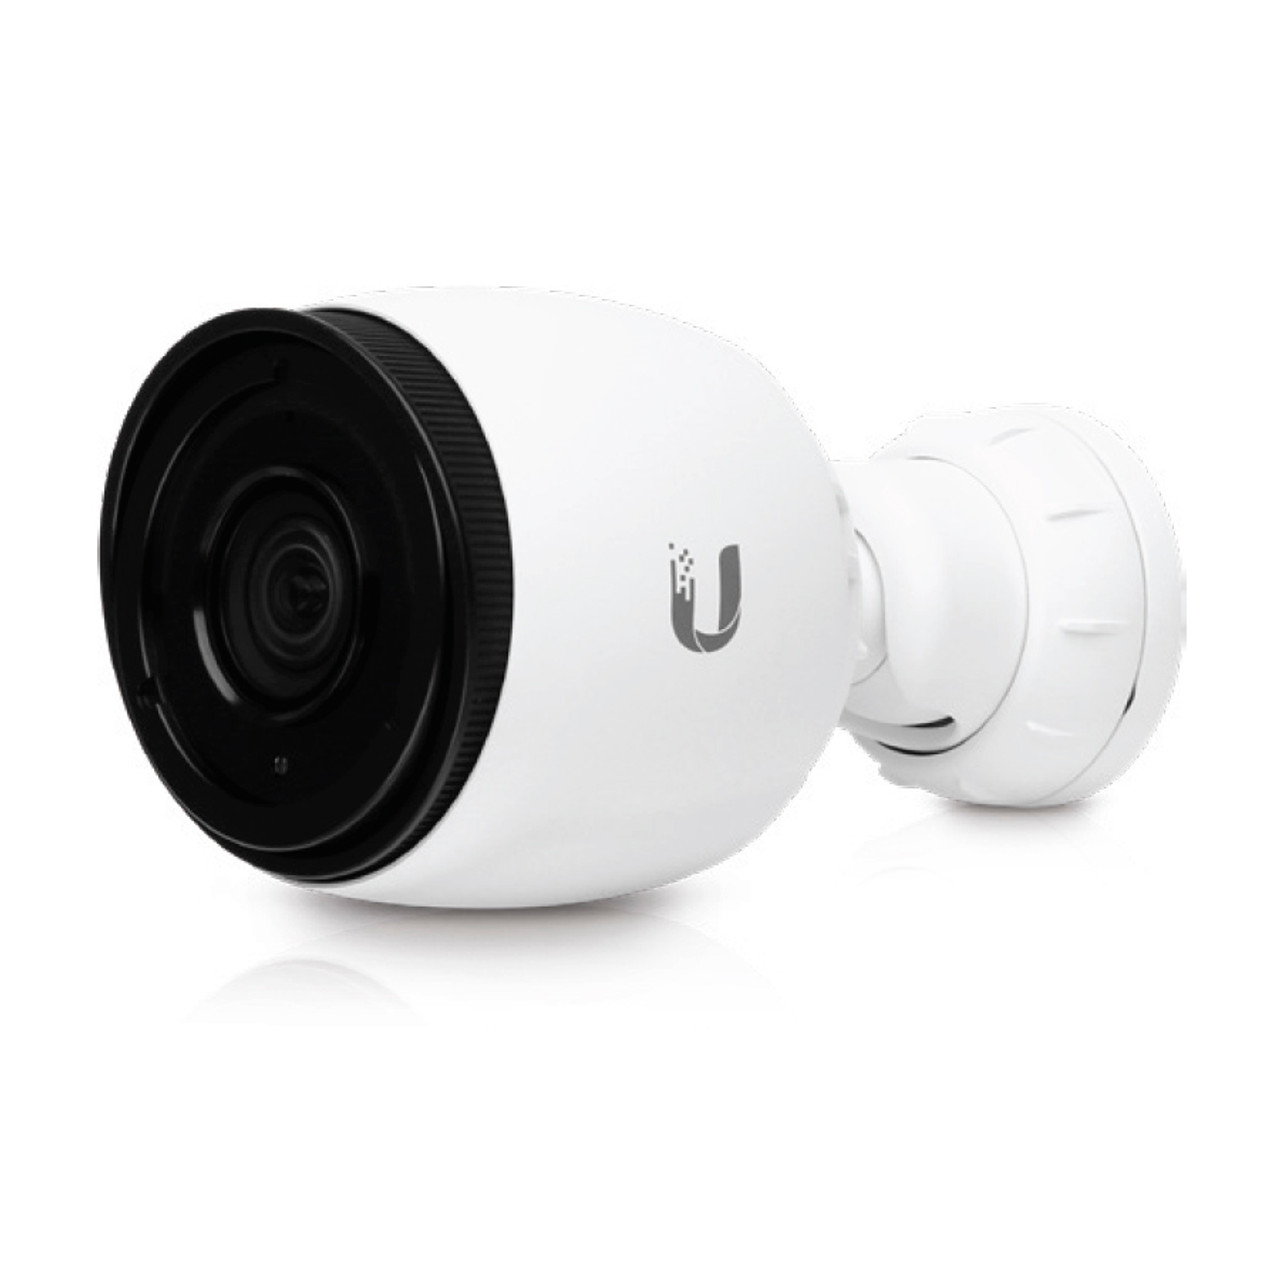 Ubiquiti UVC-G3-PRO 2MP IR Indoor/Outdoor Bullet IP Security Camera -  CONTACT US TO CONFIRM STOCK